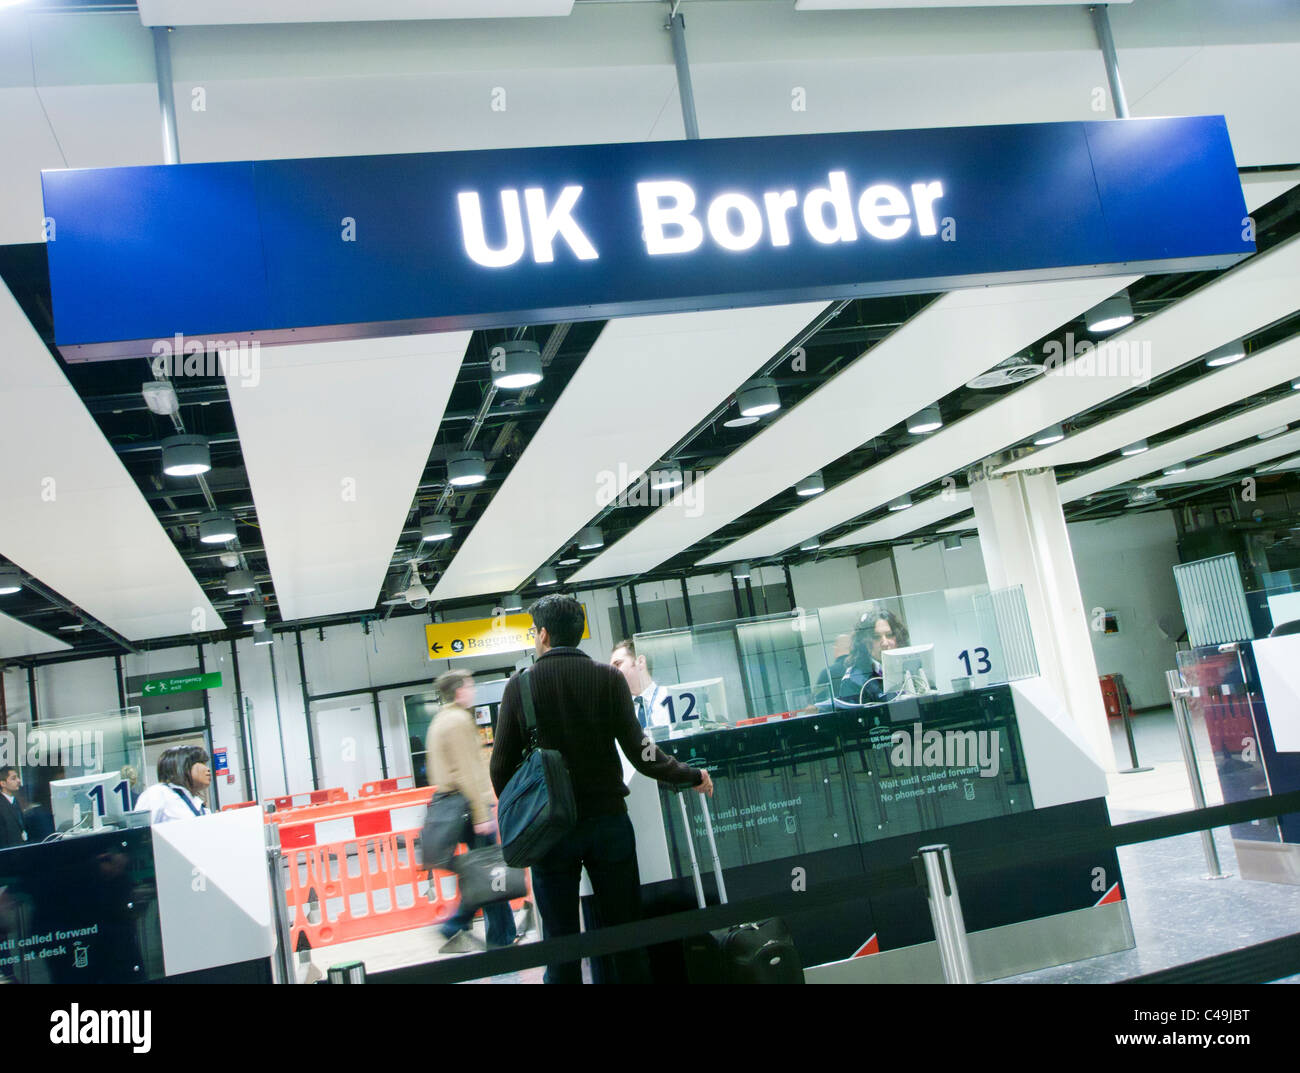 Immigration at UK Border control at an airport in Britain Stock Photo